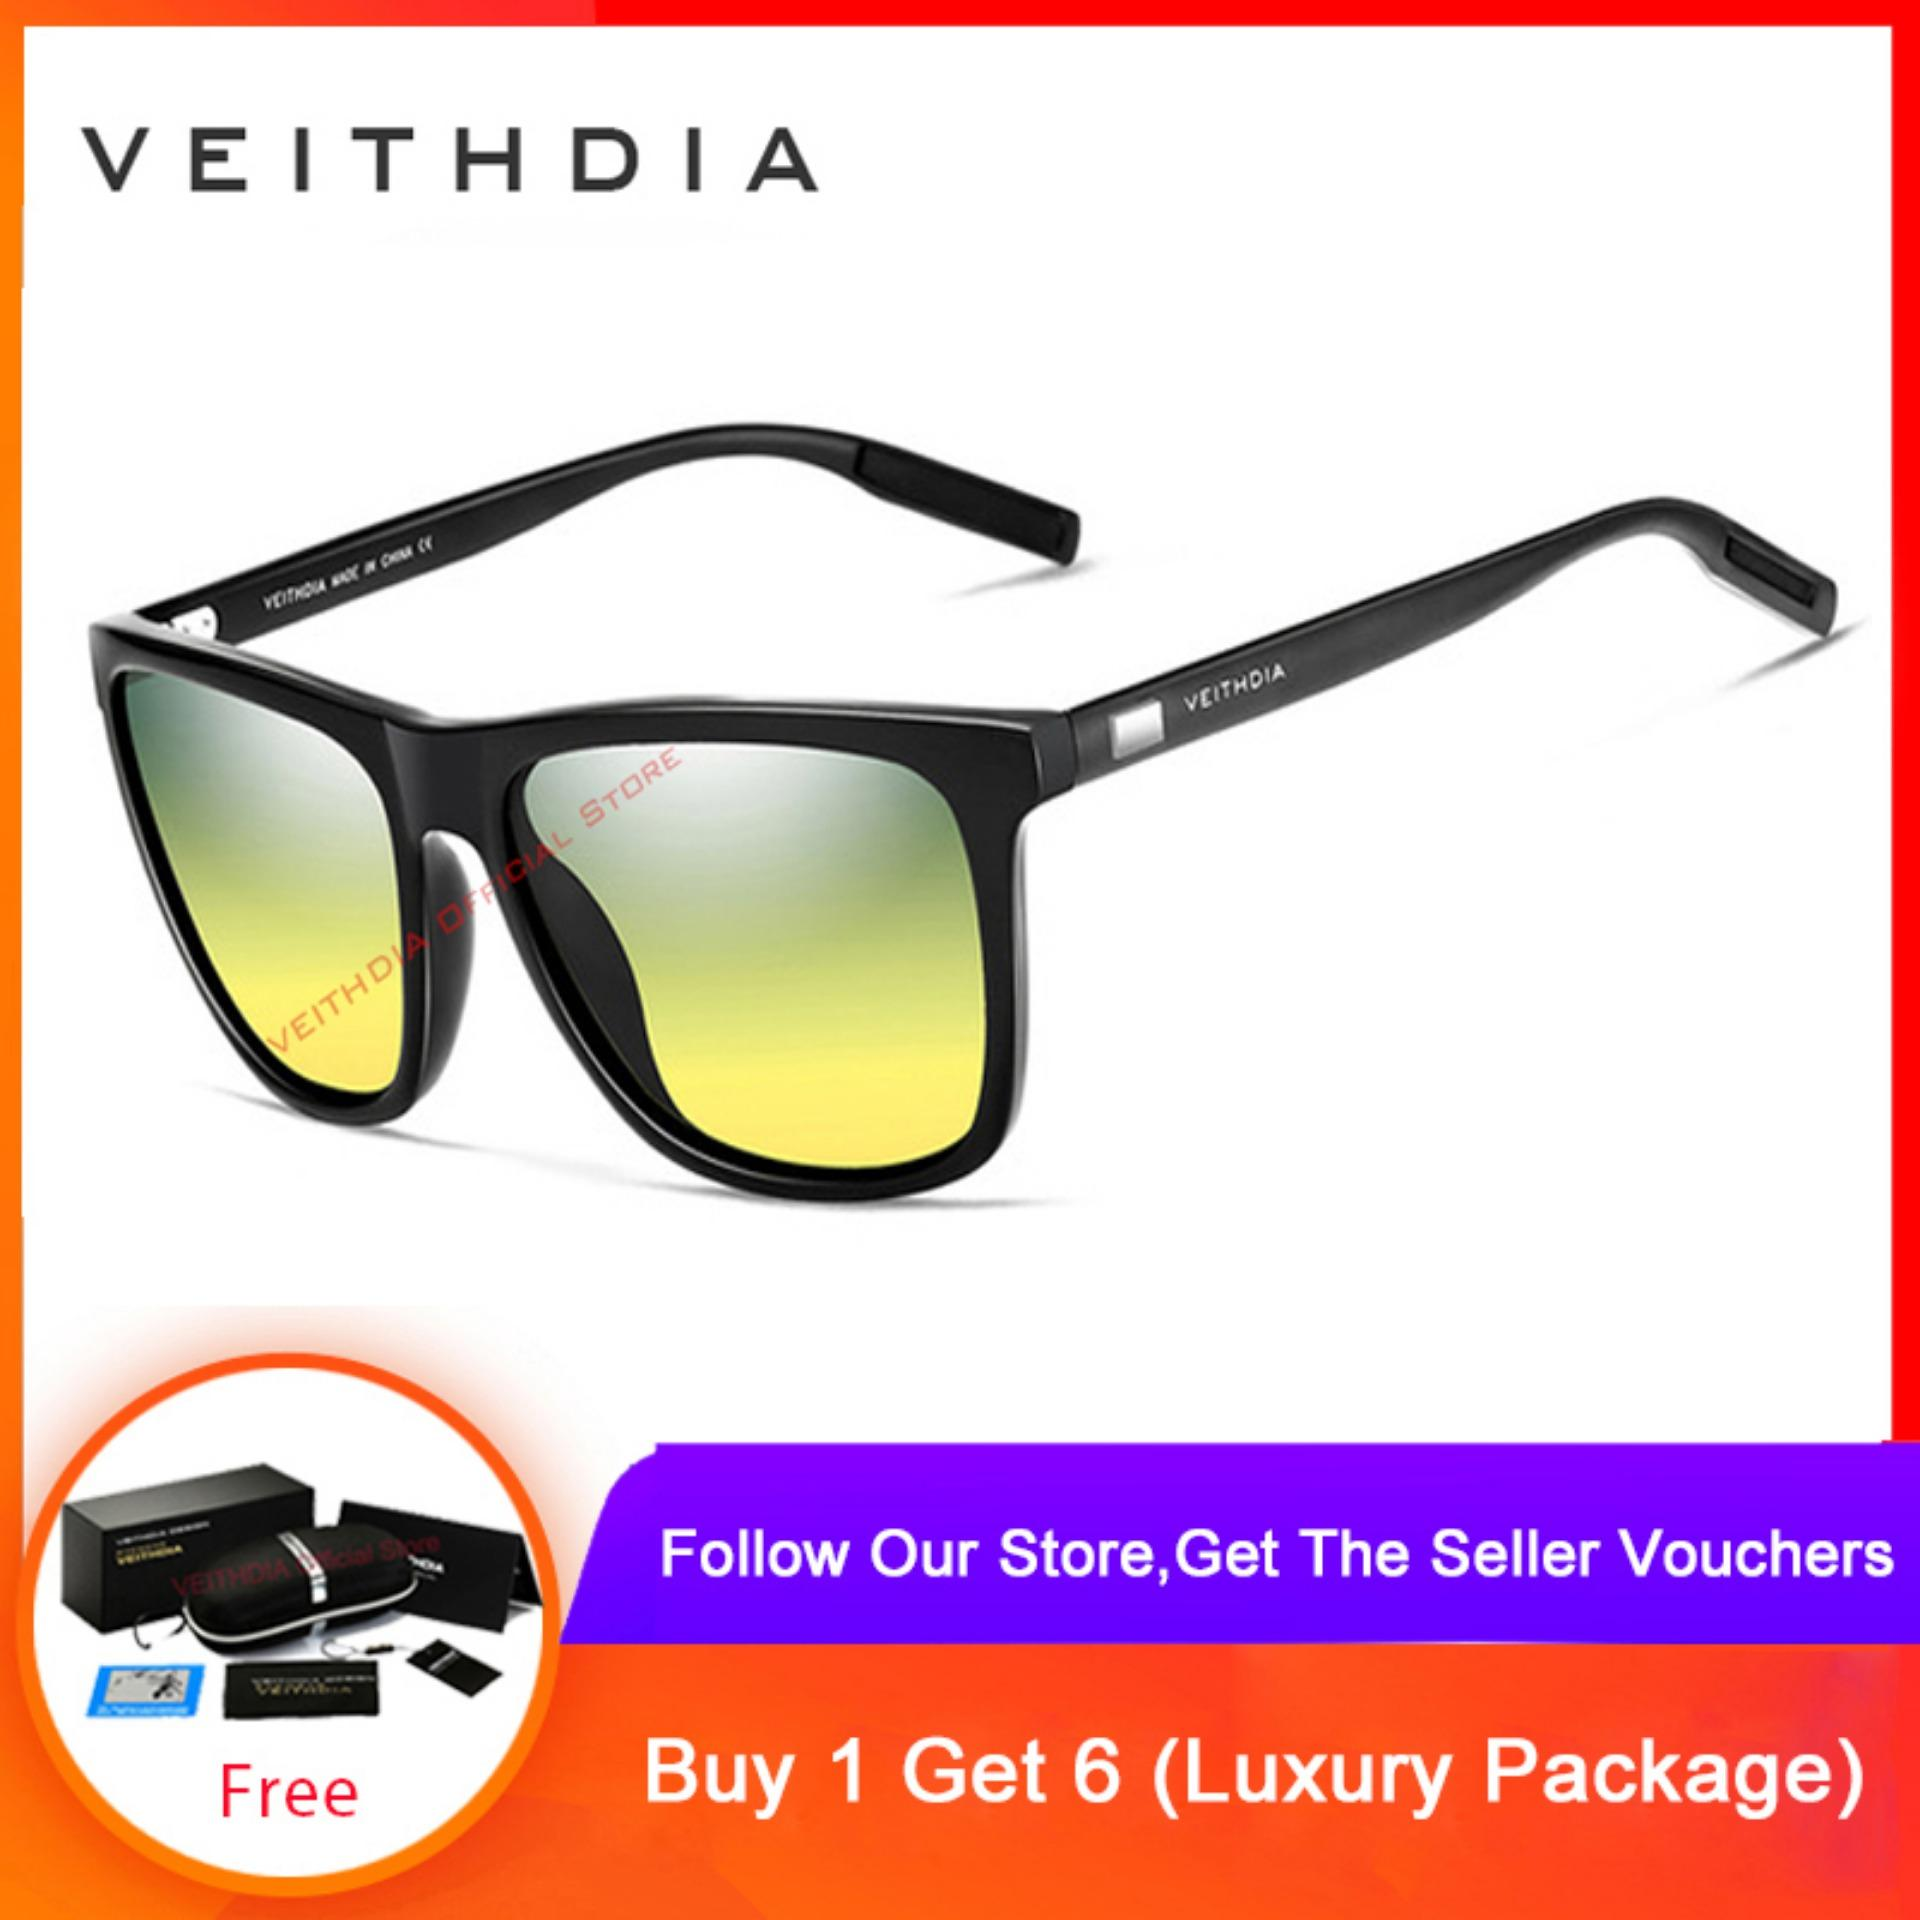 286133cb2e5cb VEITHDIA Unisex Aluminum+TR90 Sunglasses Polarized Lens Vintage Eyewear  Accessories Sun Glasses For Men